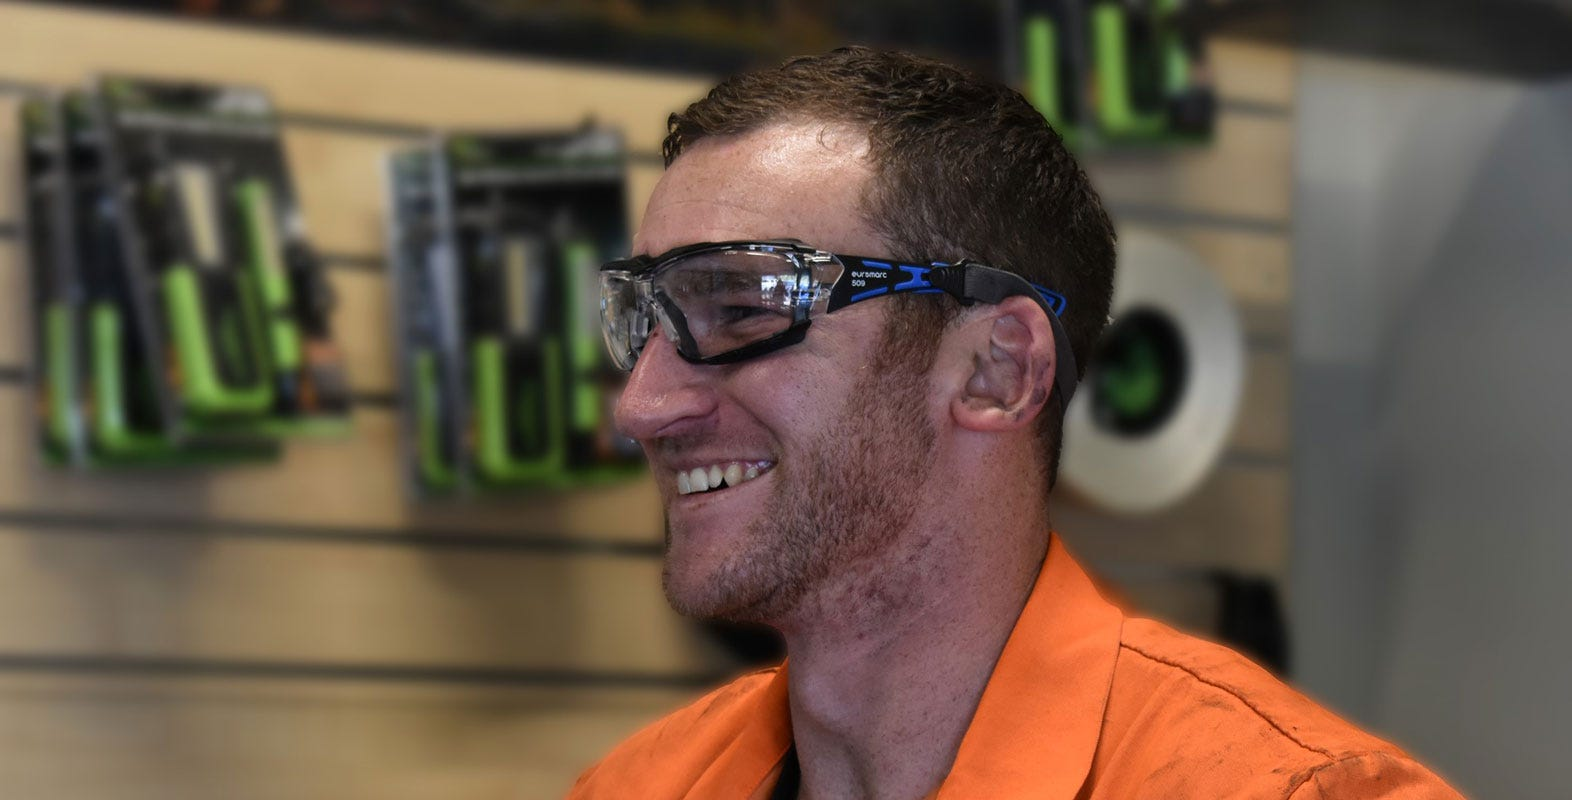 Safety Glasses 509 - the ultimate glasses you want to need